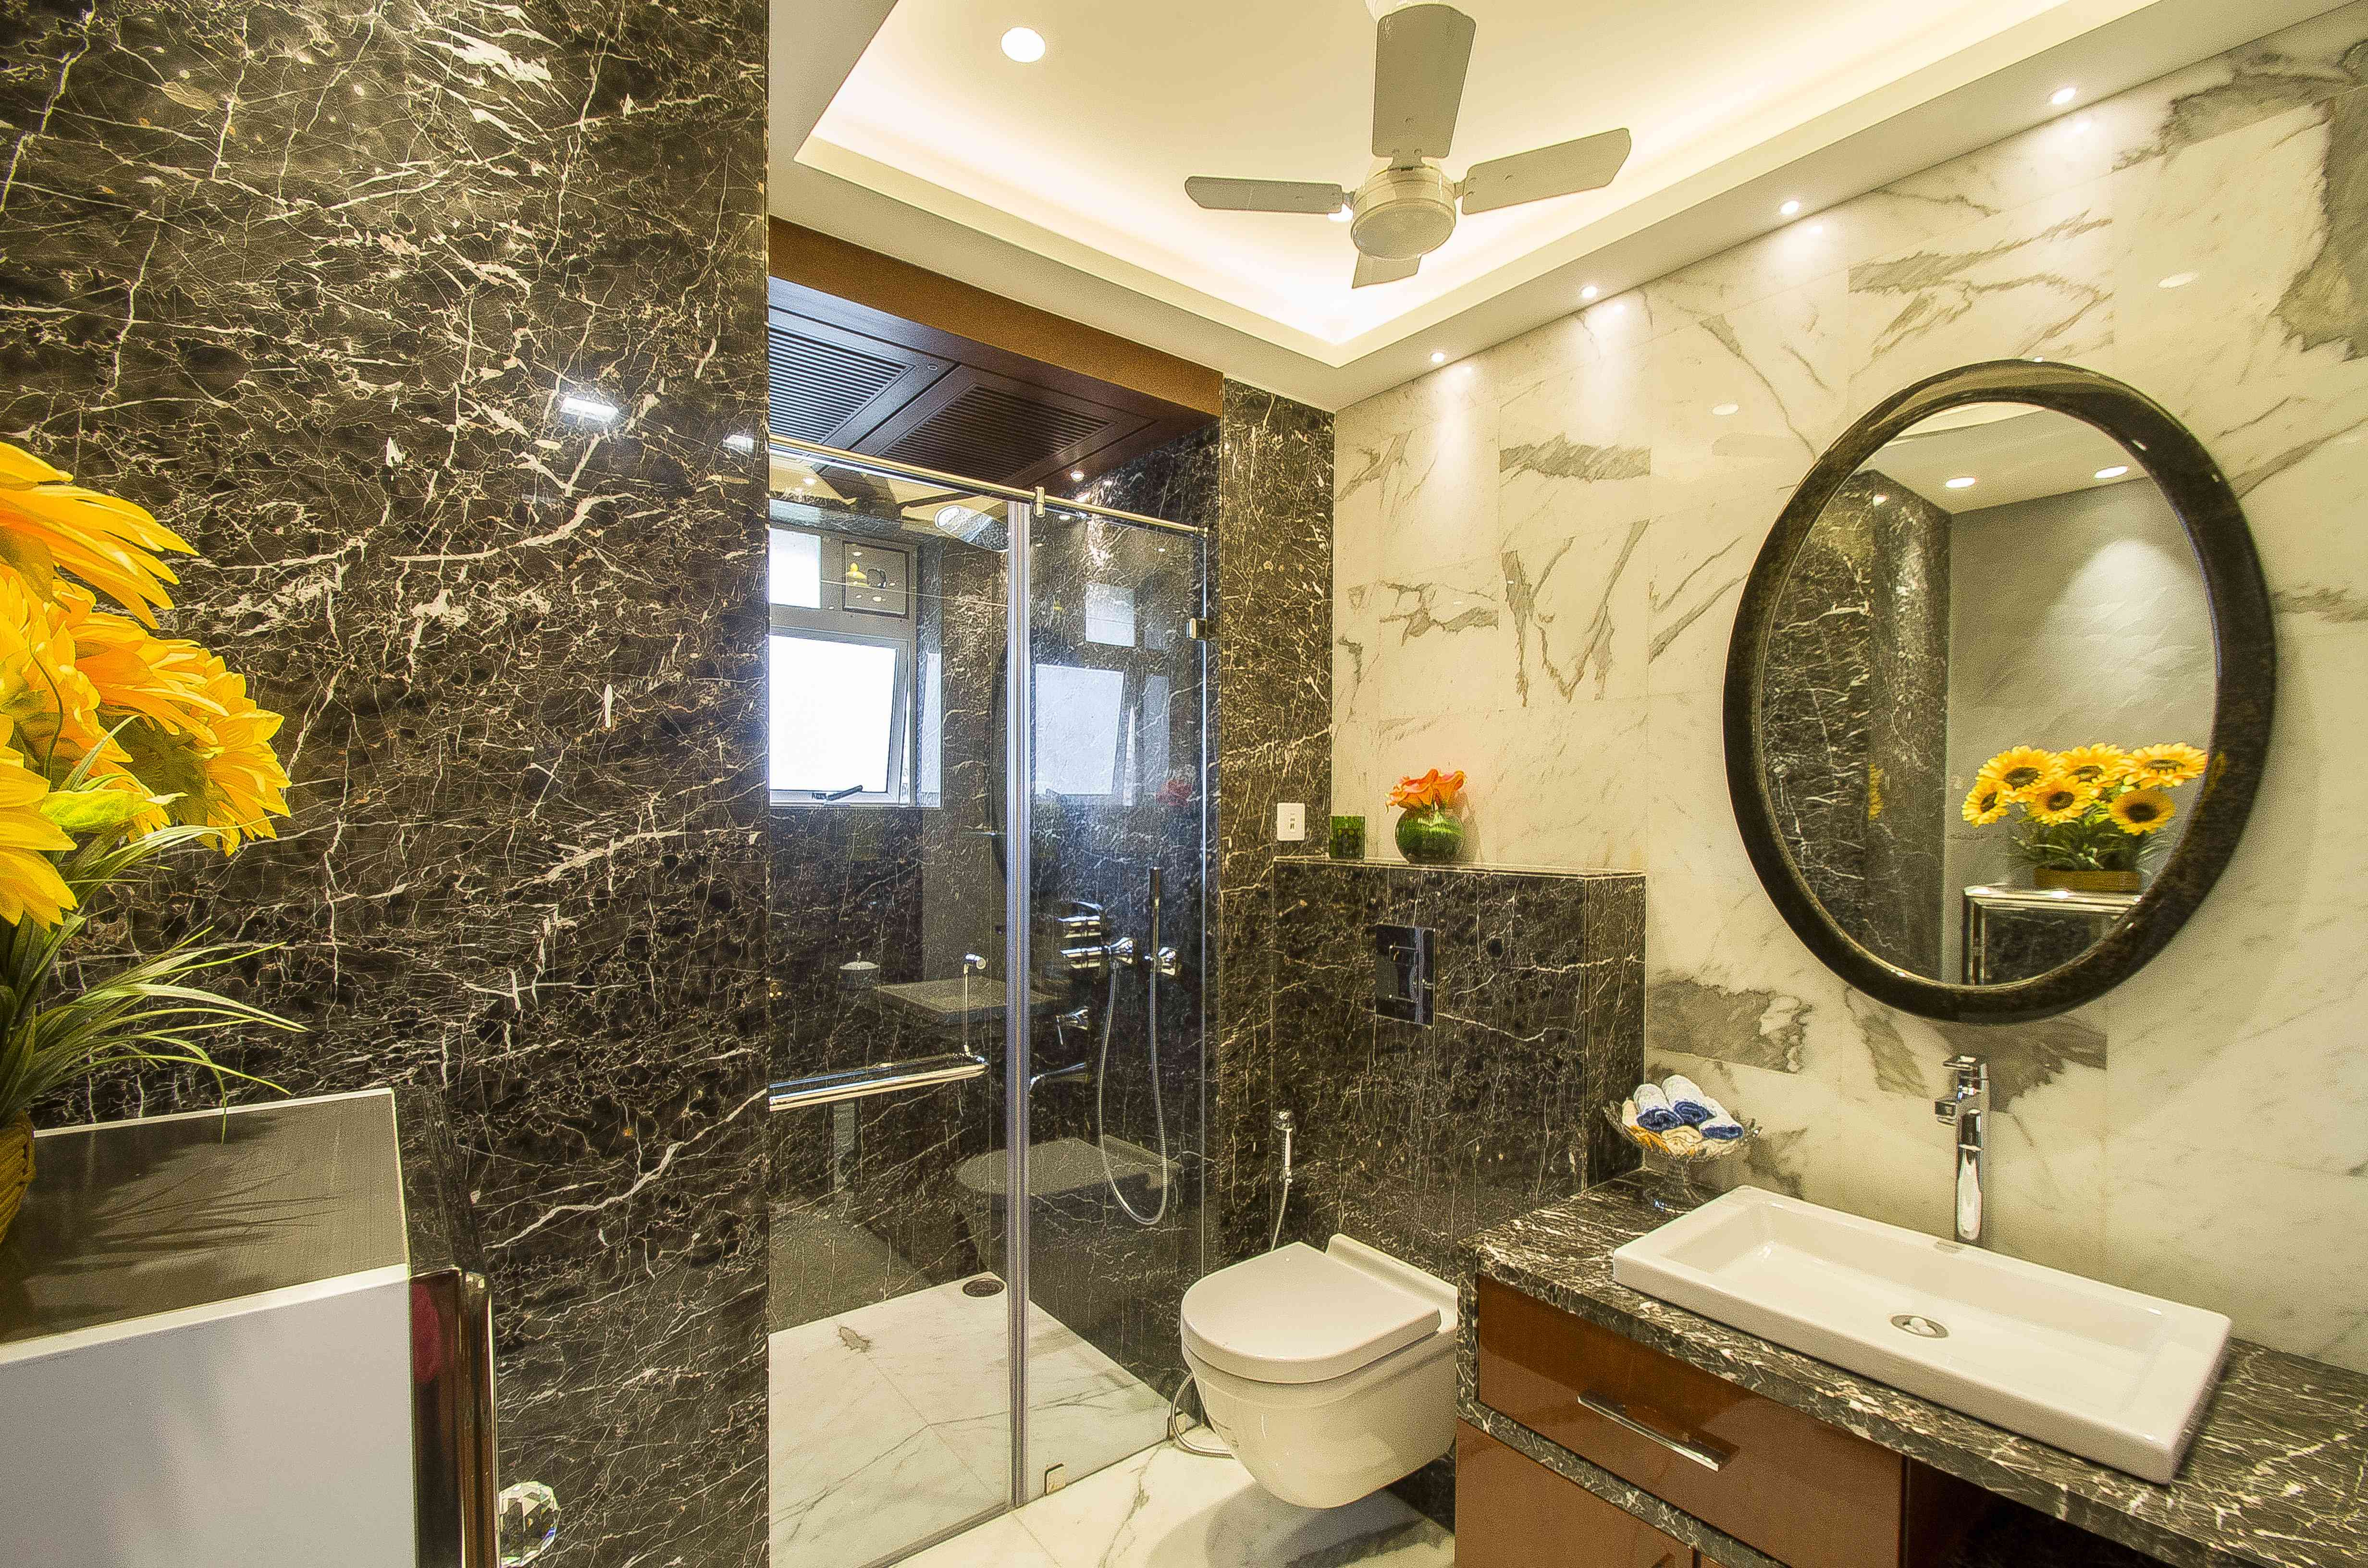 Bathroom Glass Doors Interior Design Inspiration